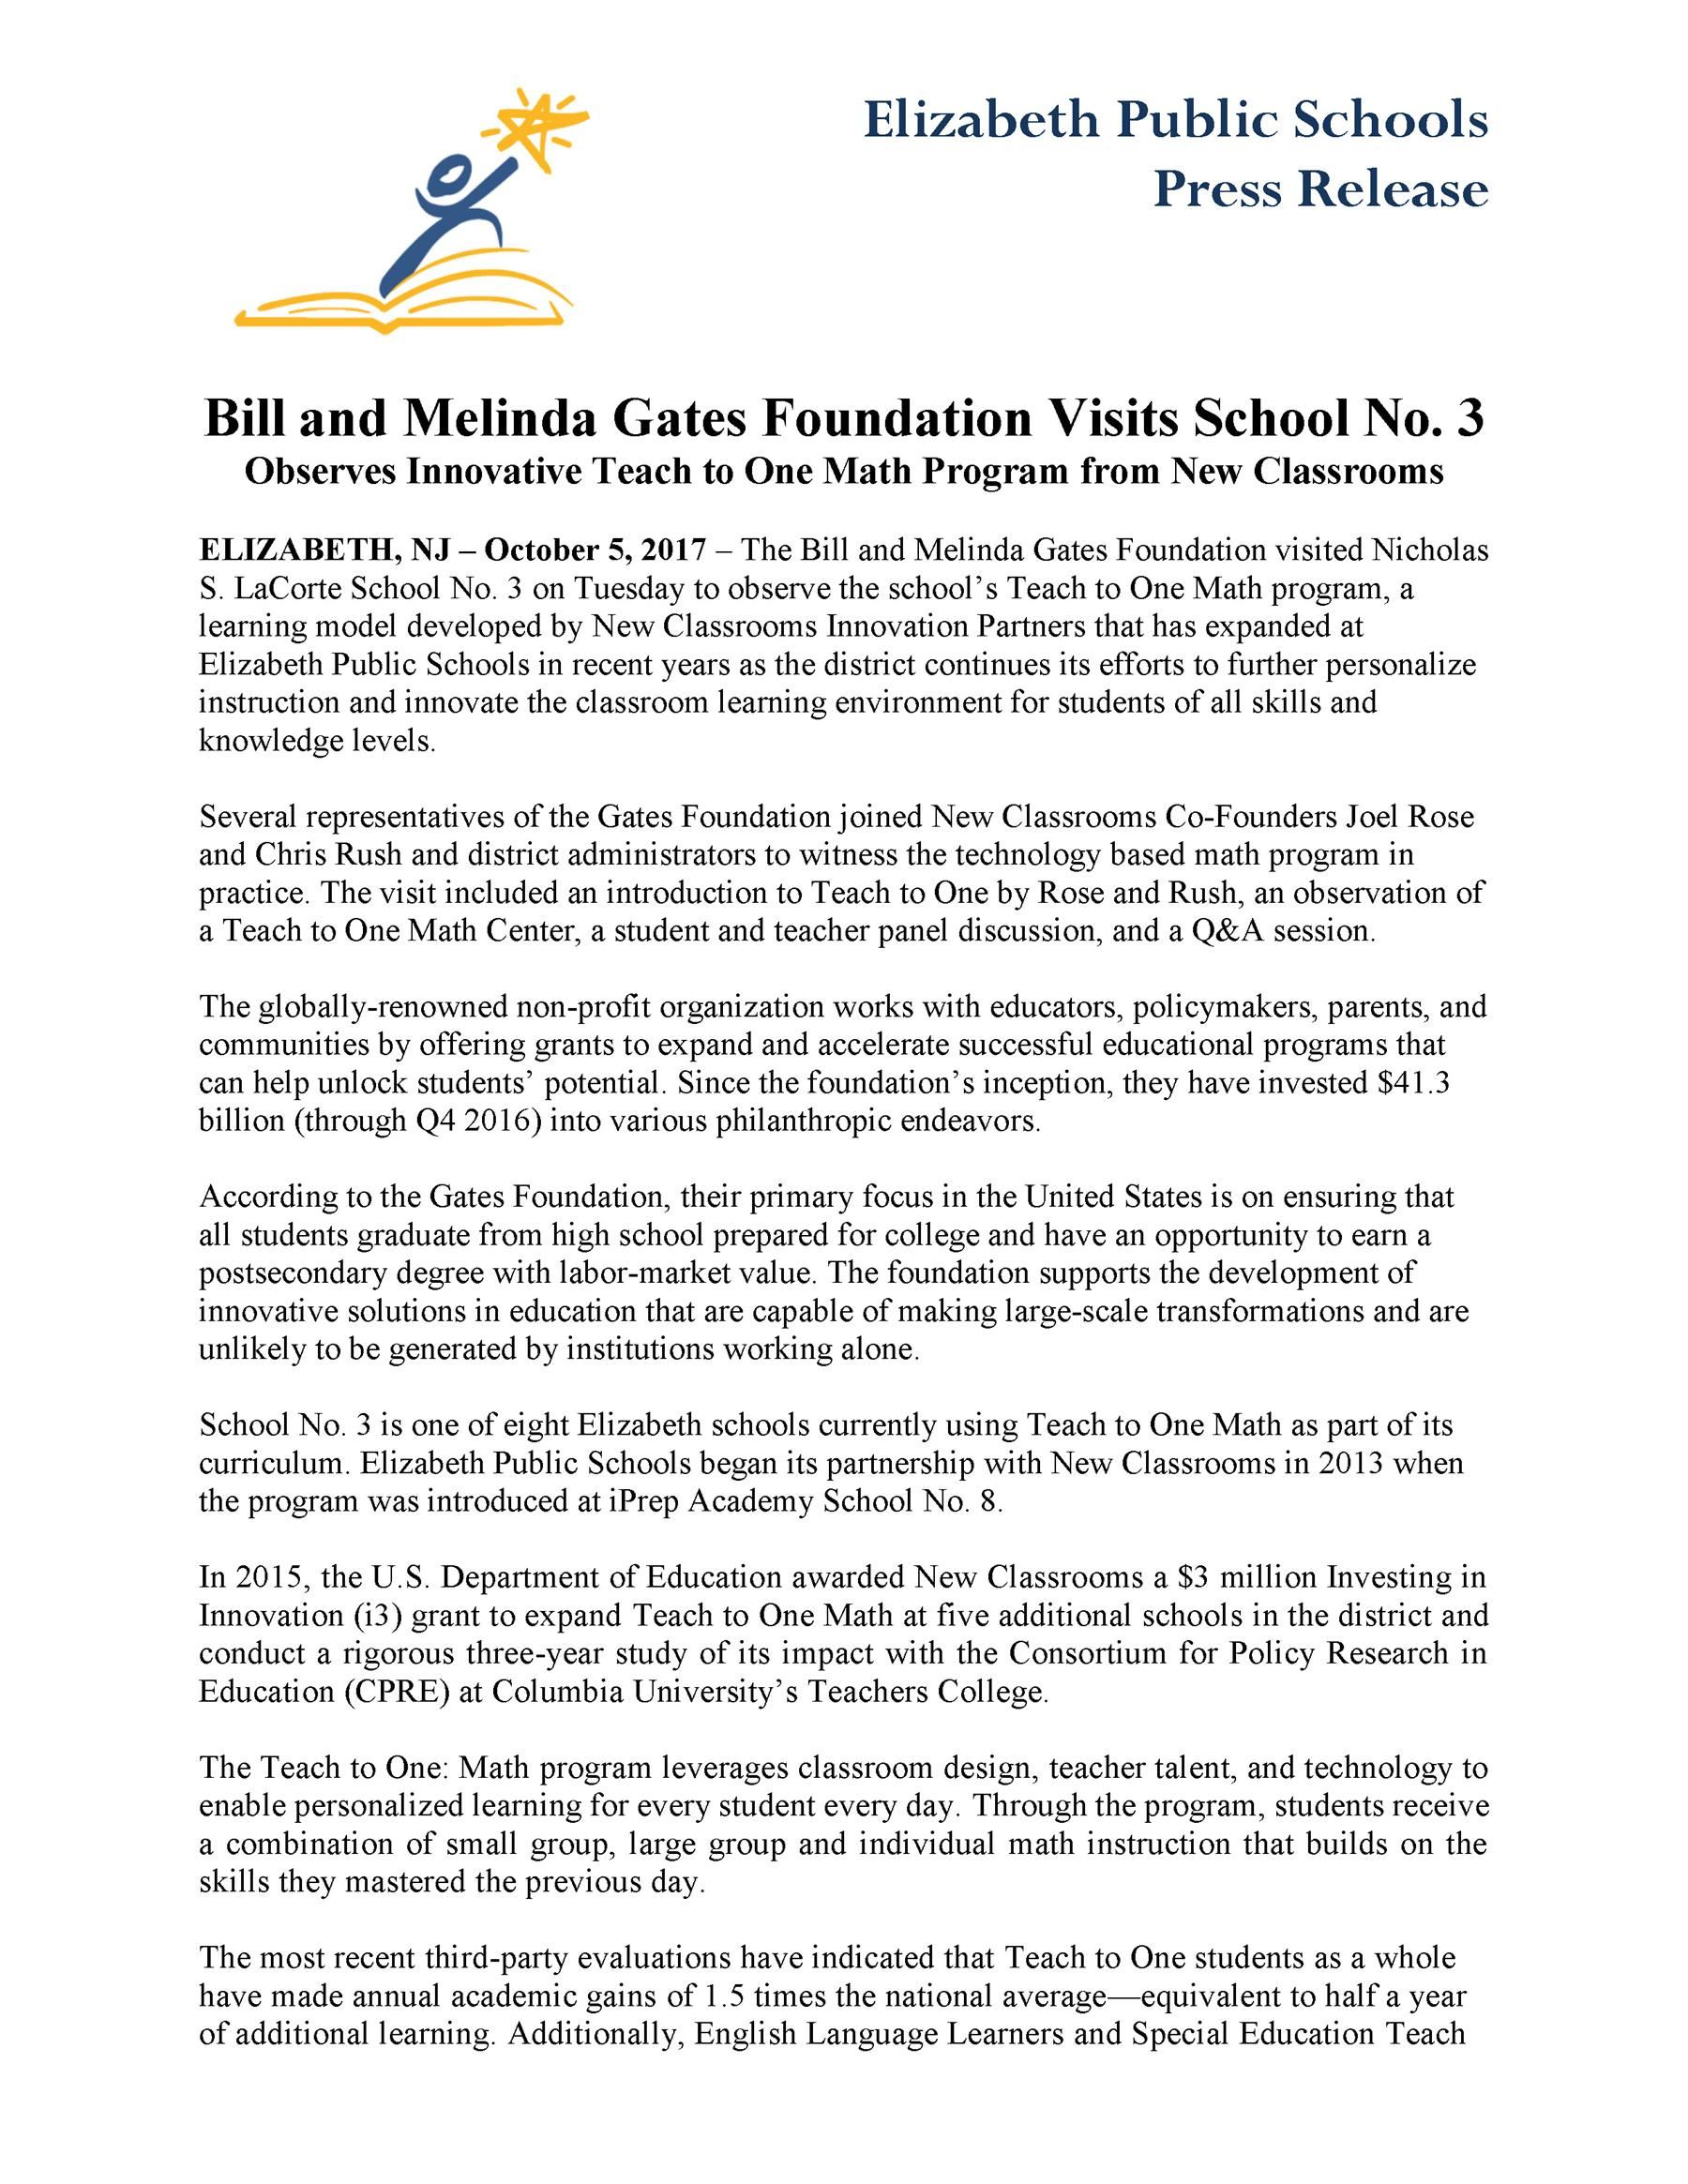 Bill and Melinda Gates Foundation Visits School No. 3  Observes Innovative Teach to One Math Program from New Classrooms